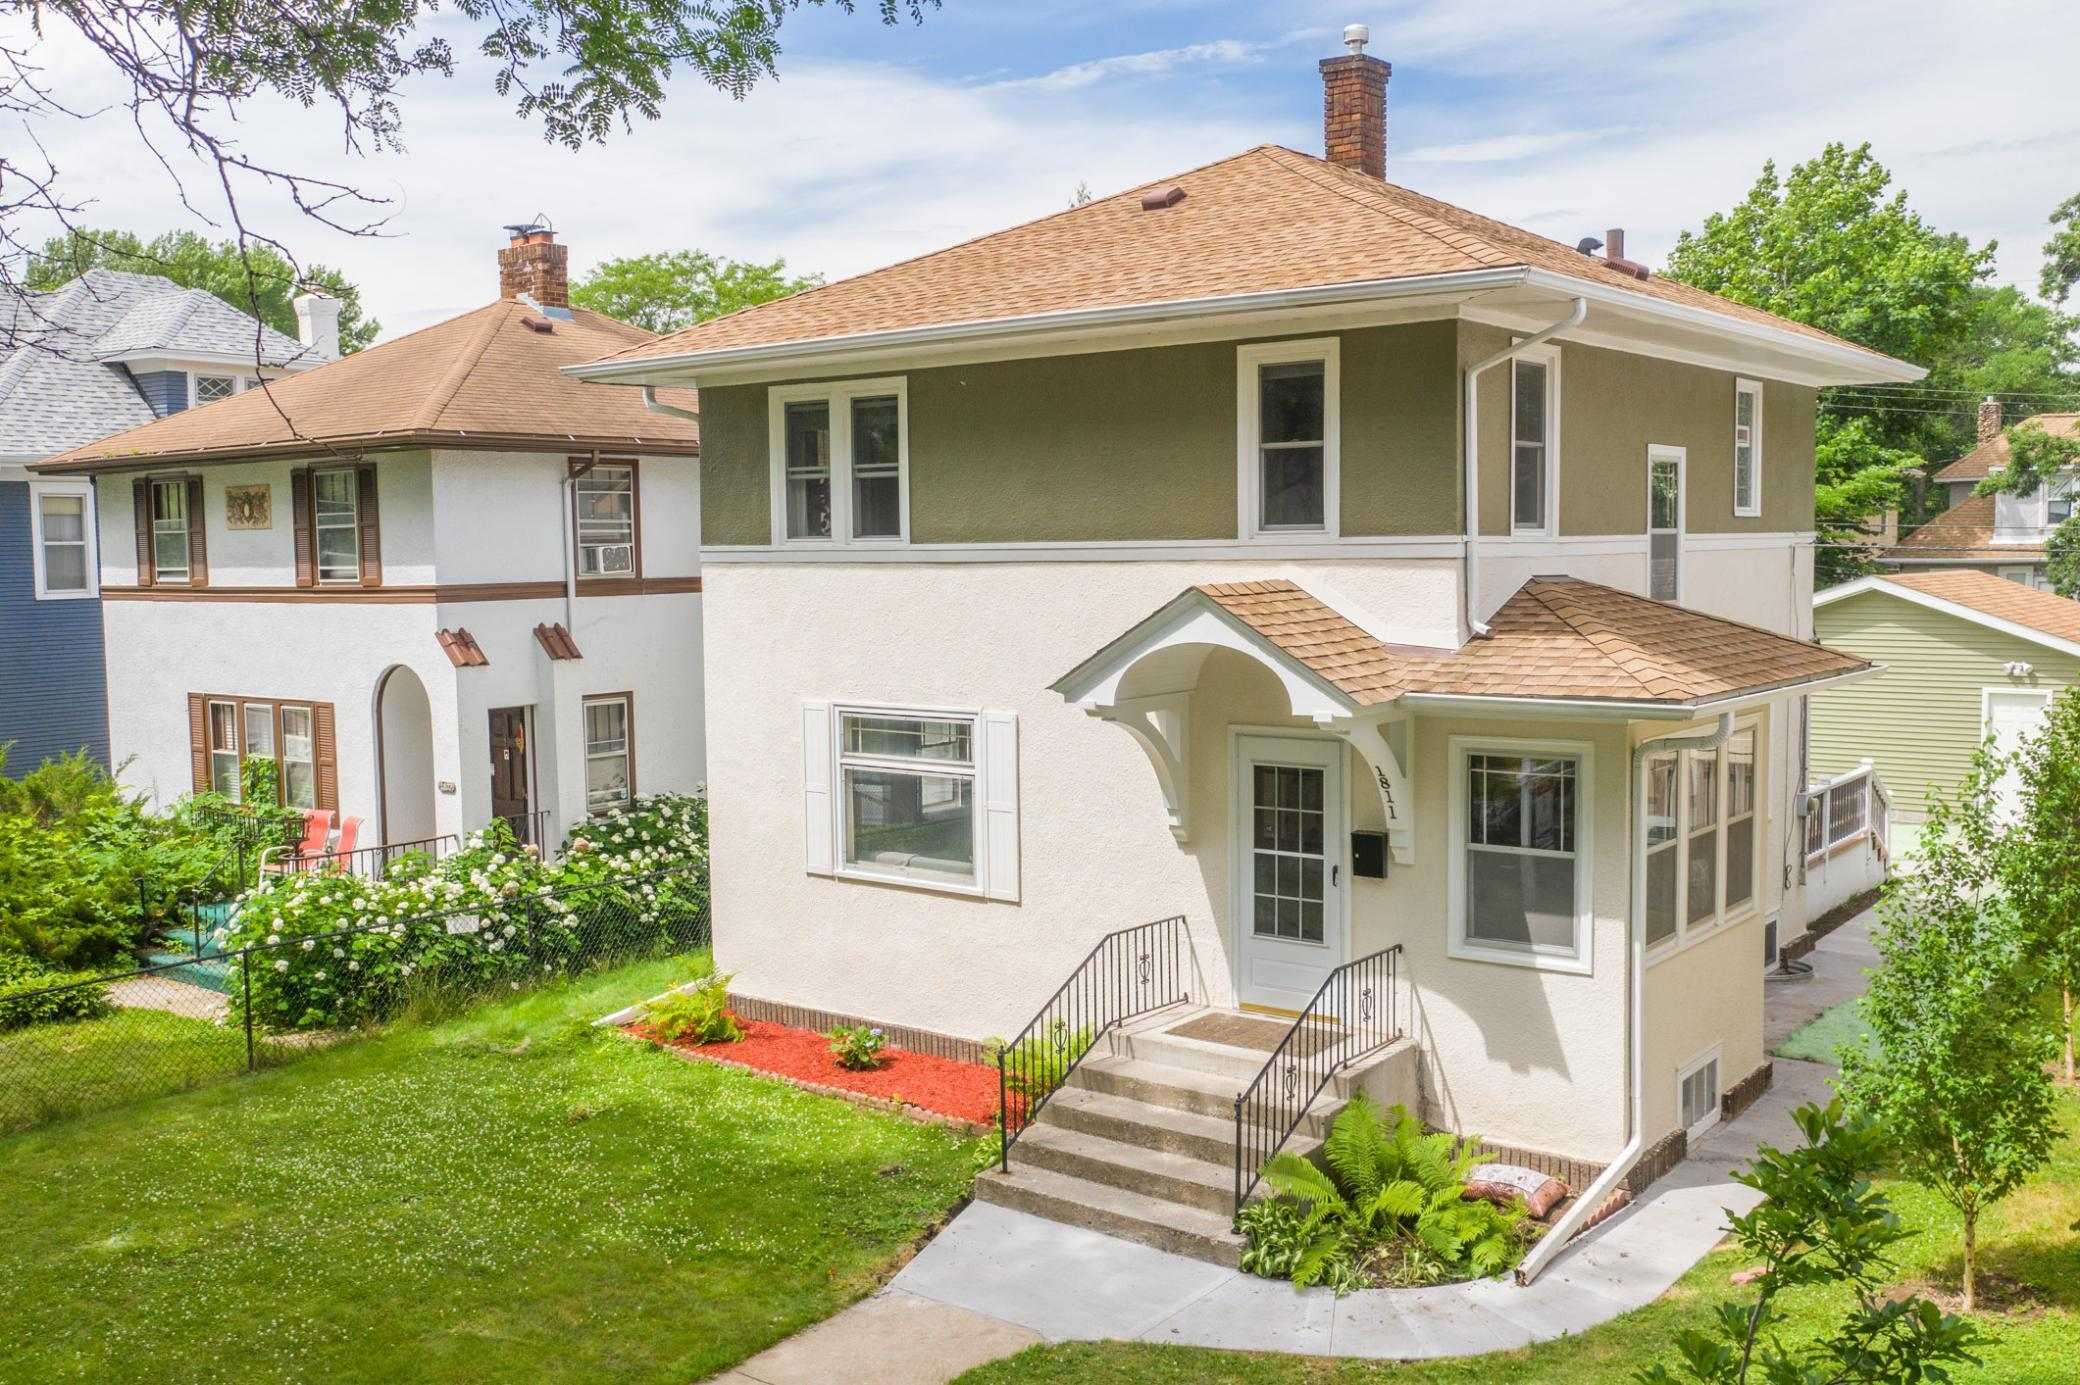 1811 Irving N Property Photo - Minneapolis, MN real estate listing